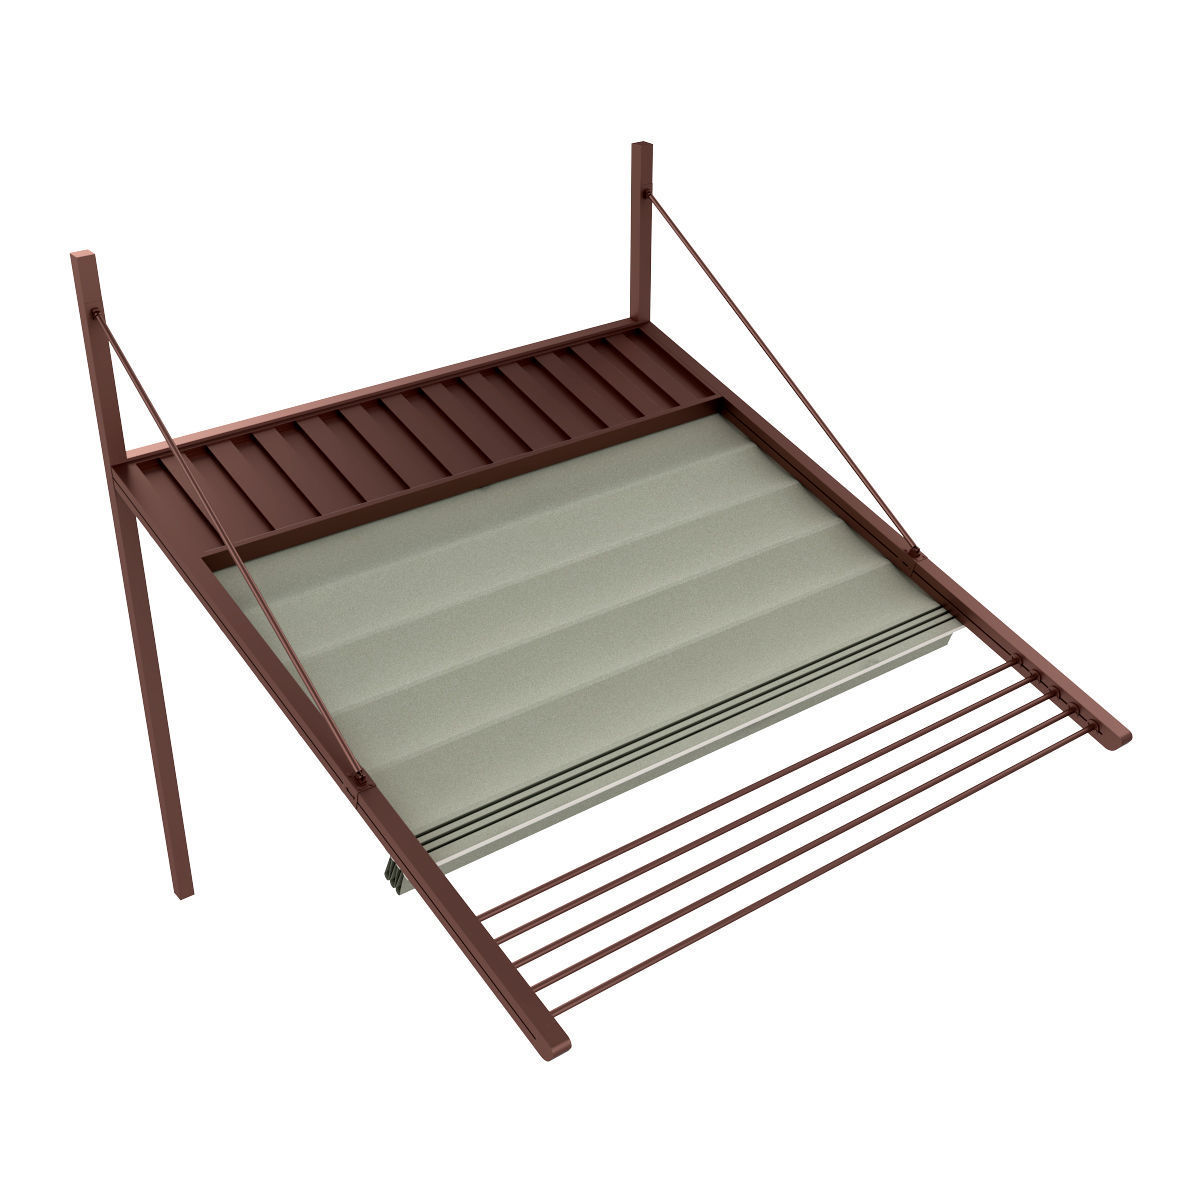 Motorized Pergola 3 bronze patina rust